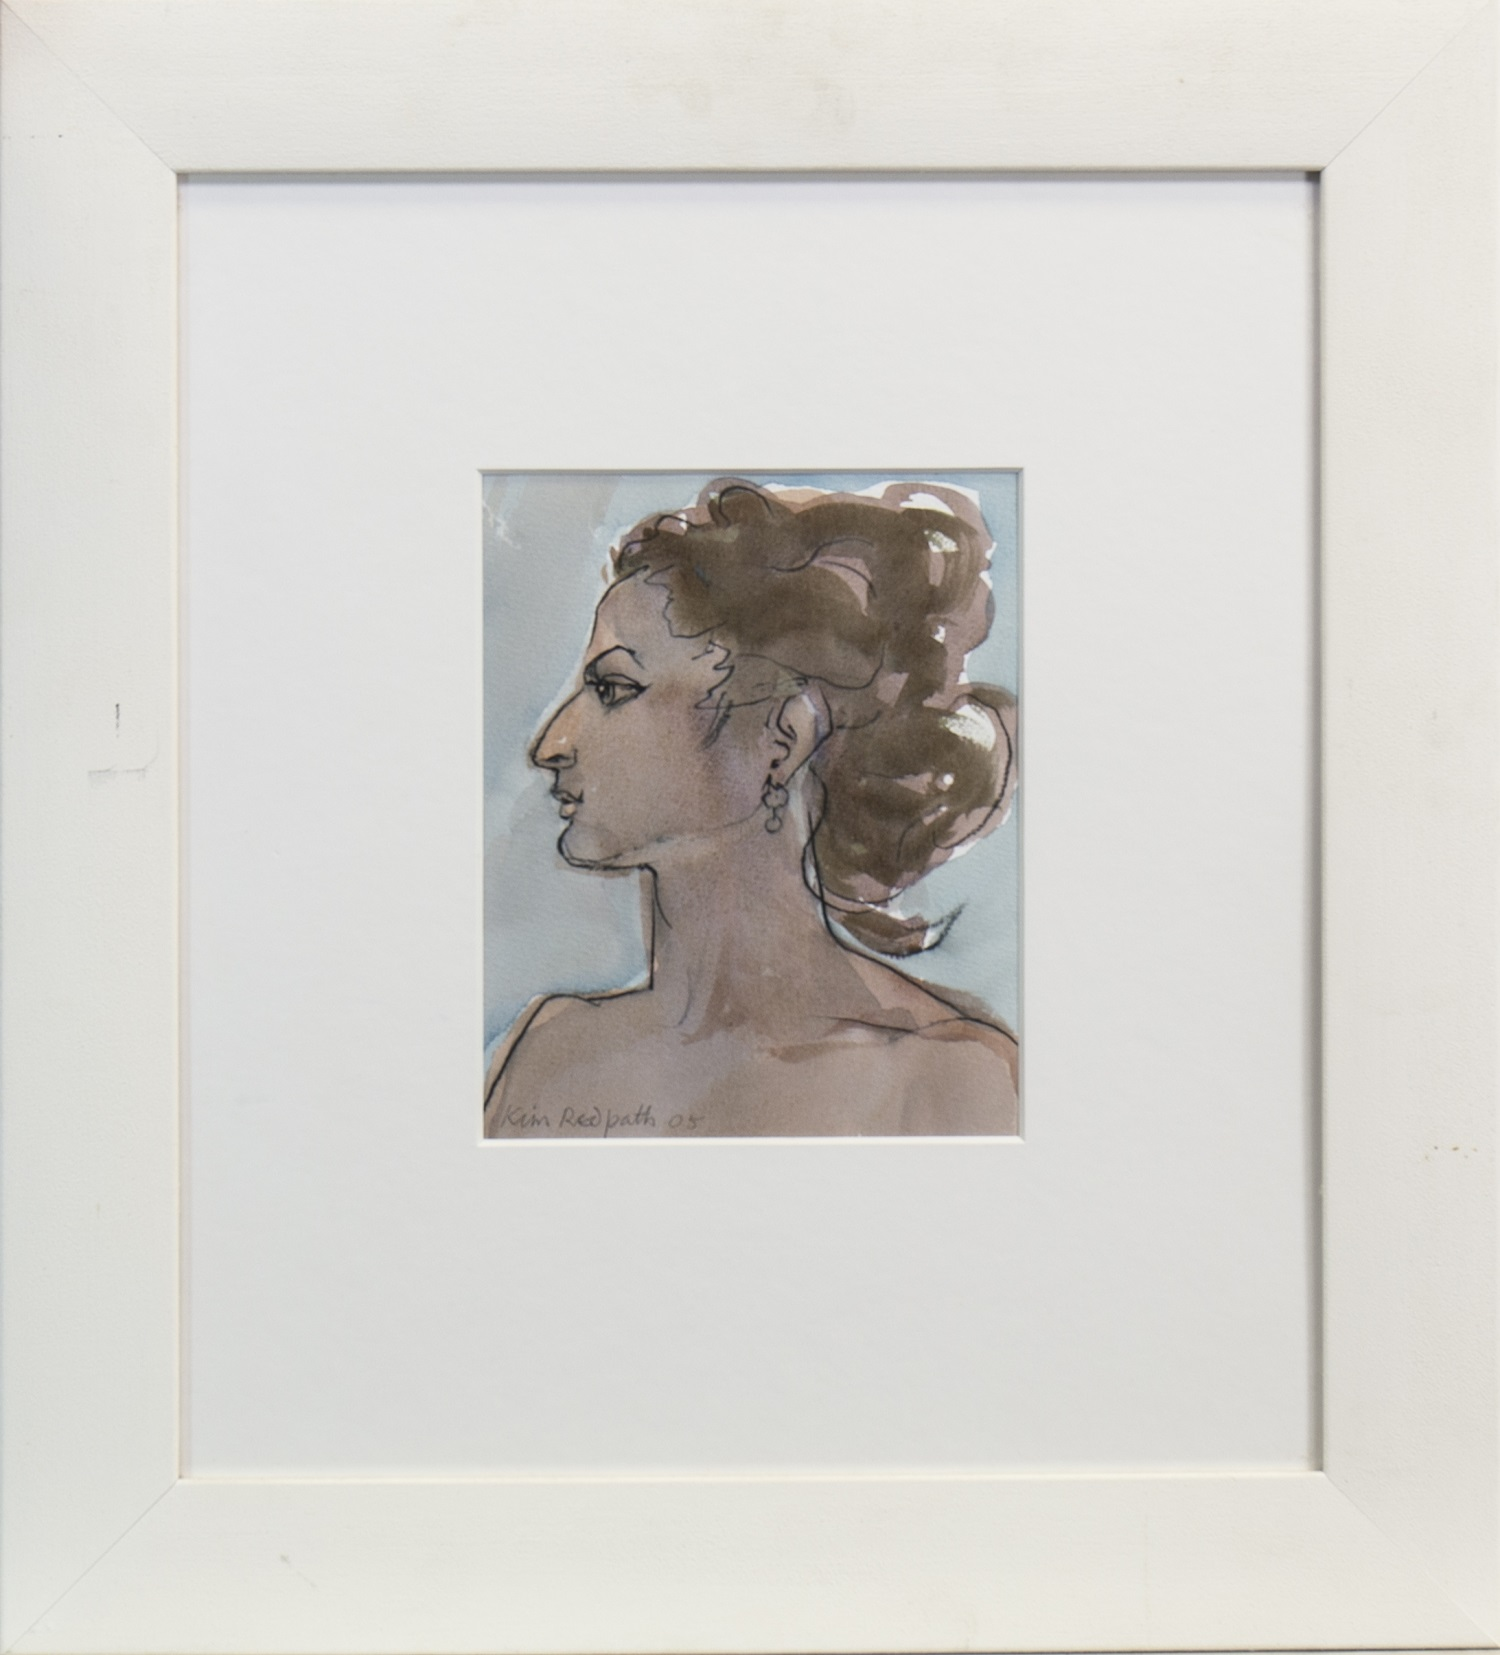 Lot 686 - PROFILE, A MIXED MEDIA BY KIM REDPATH